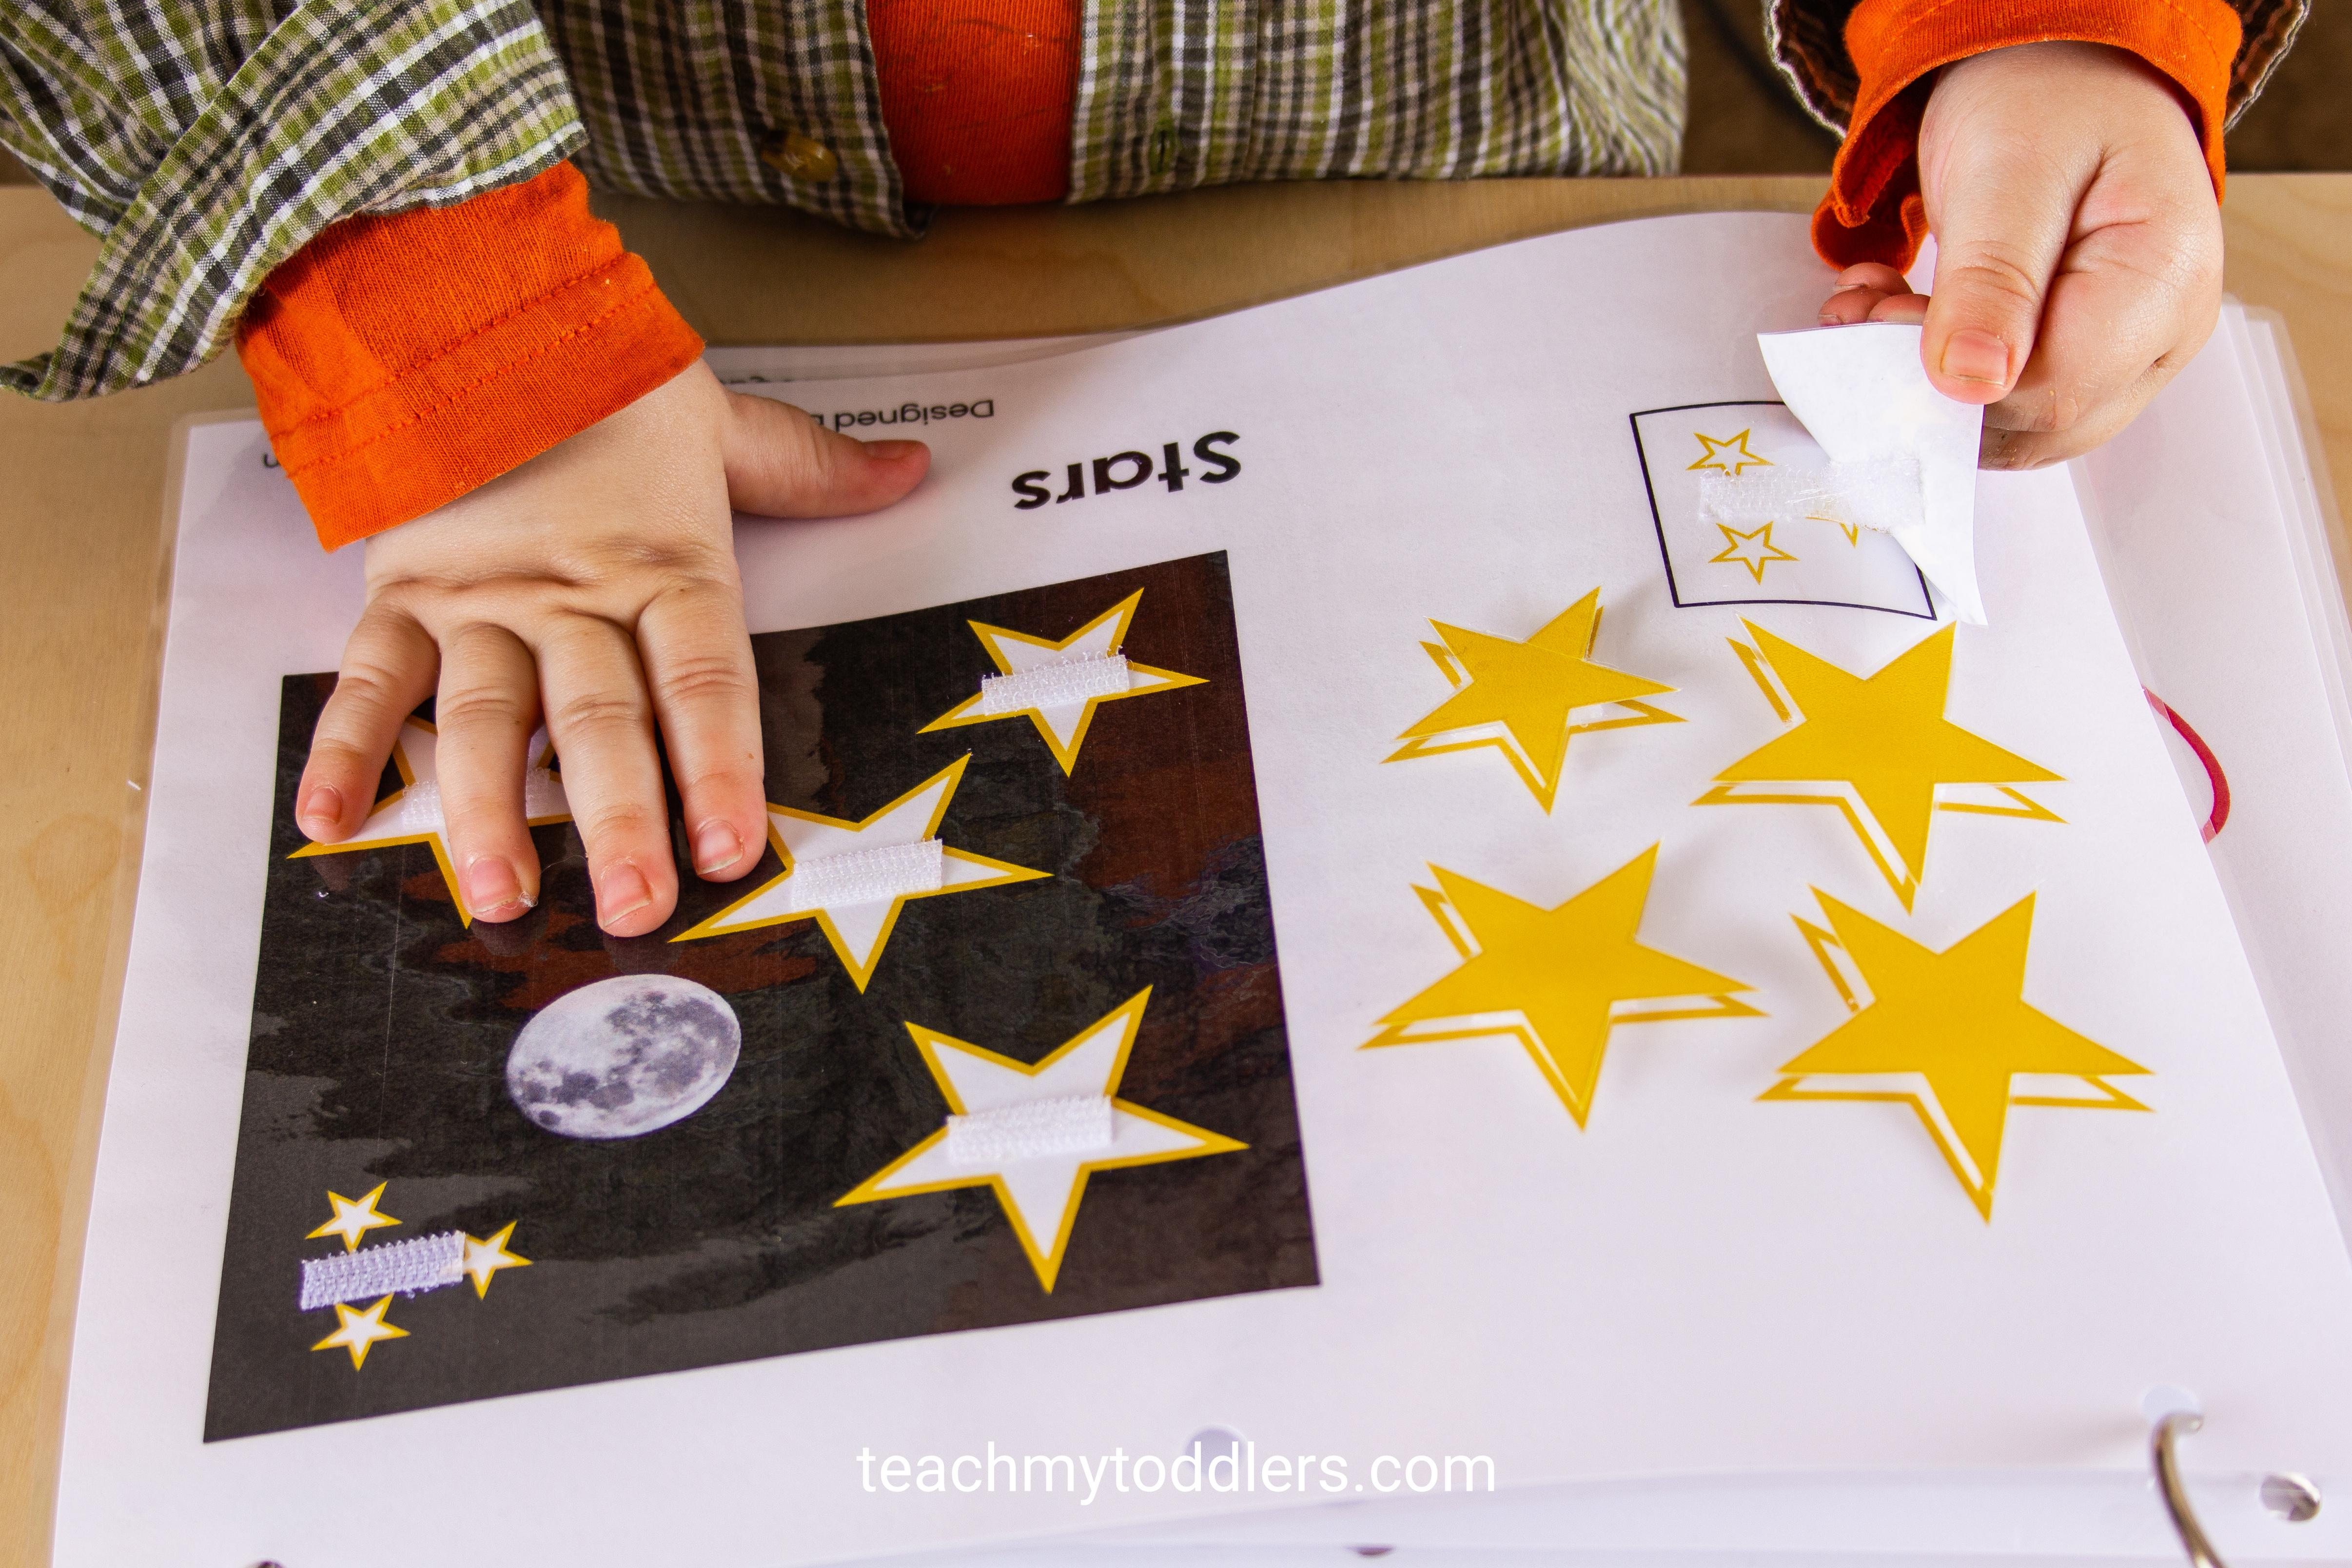 Learn how to use this shapes quiet book to teach toddlers shapes